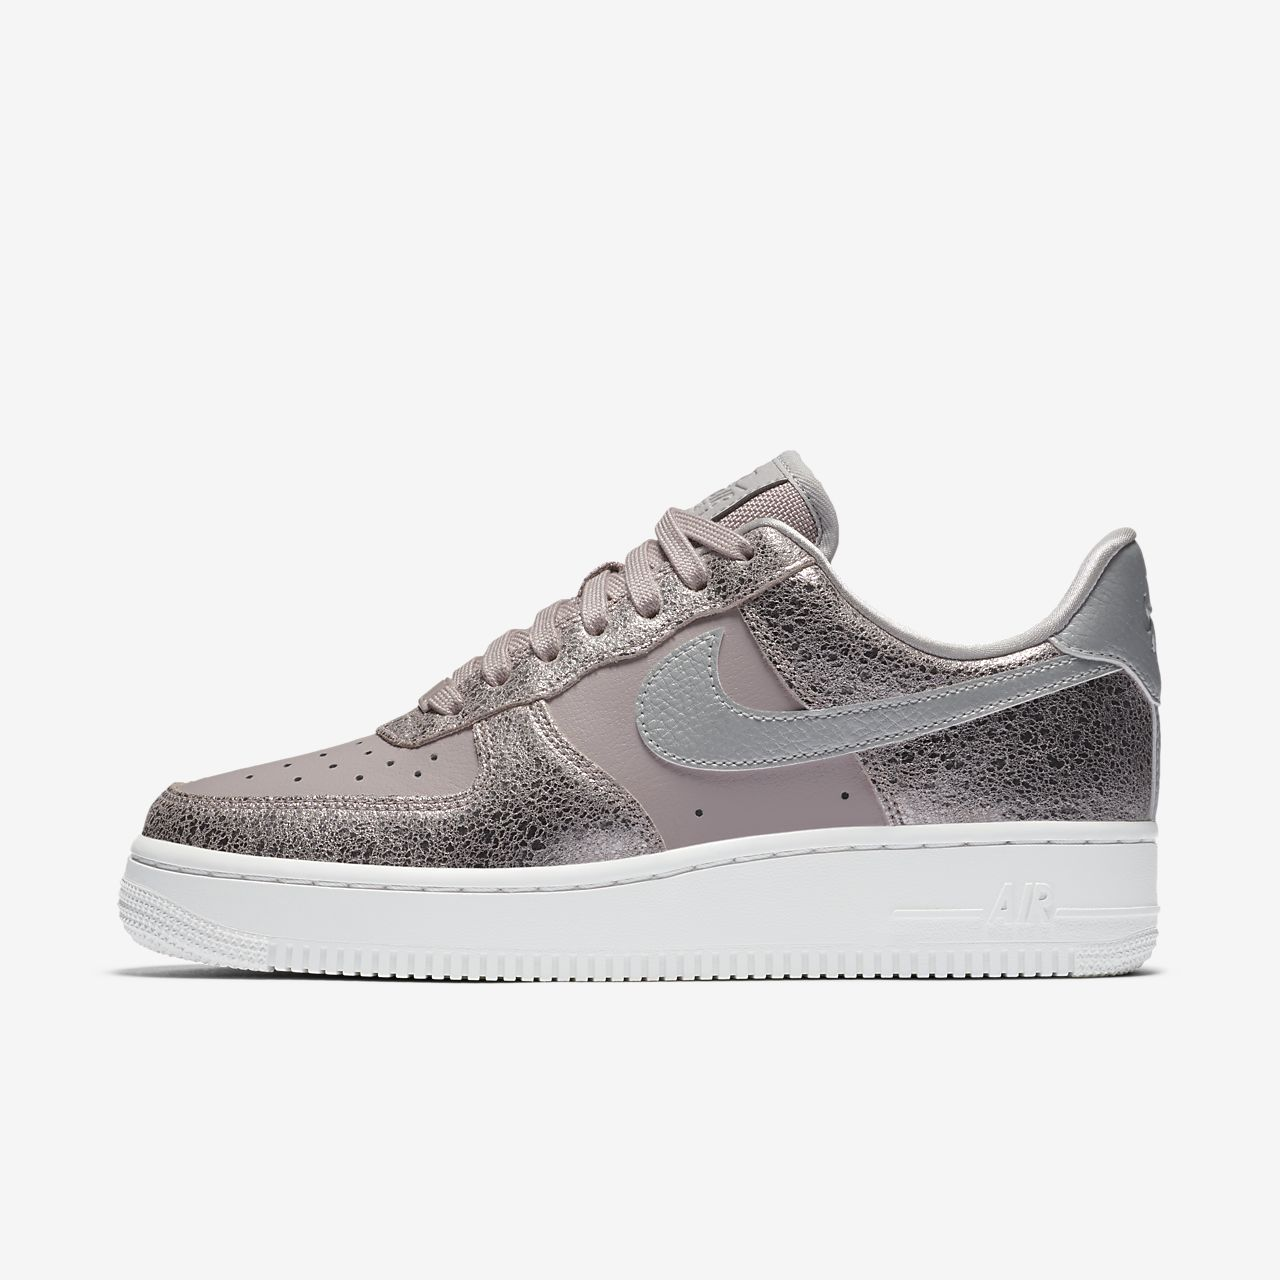 Nike Air Force 1 07 Premium Womens Shoe